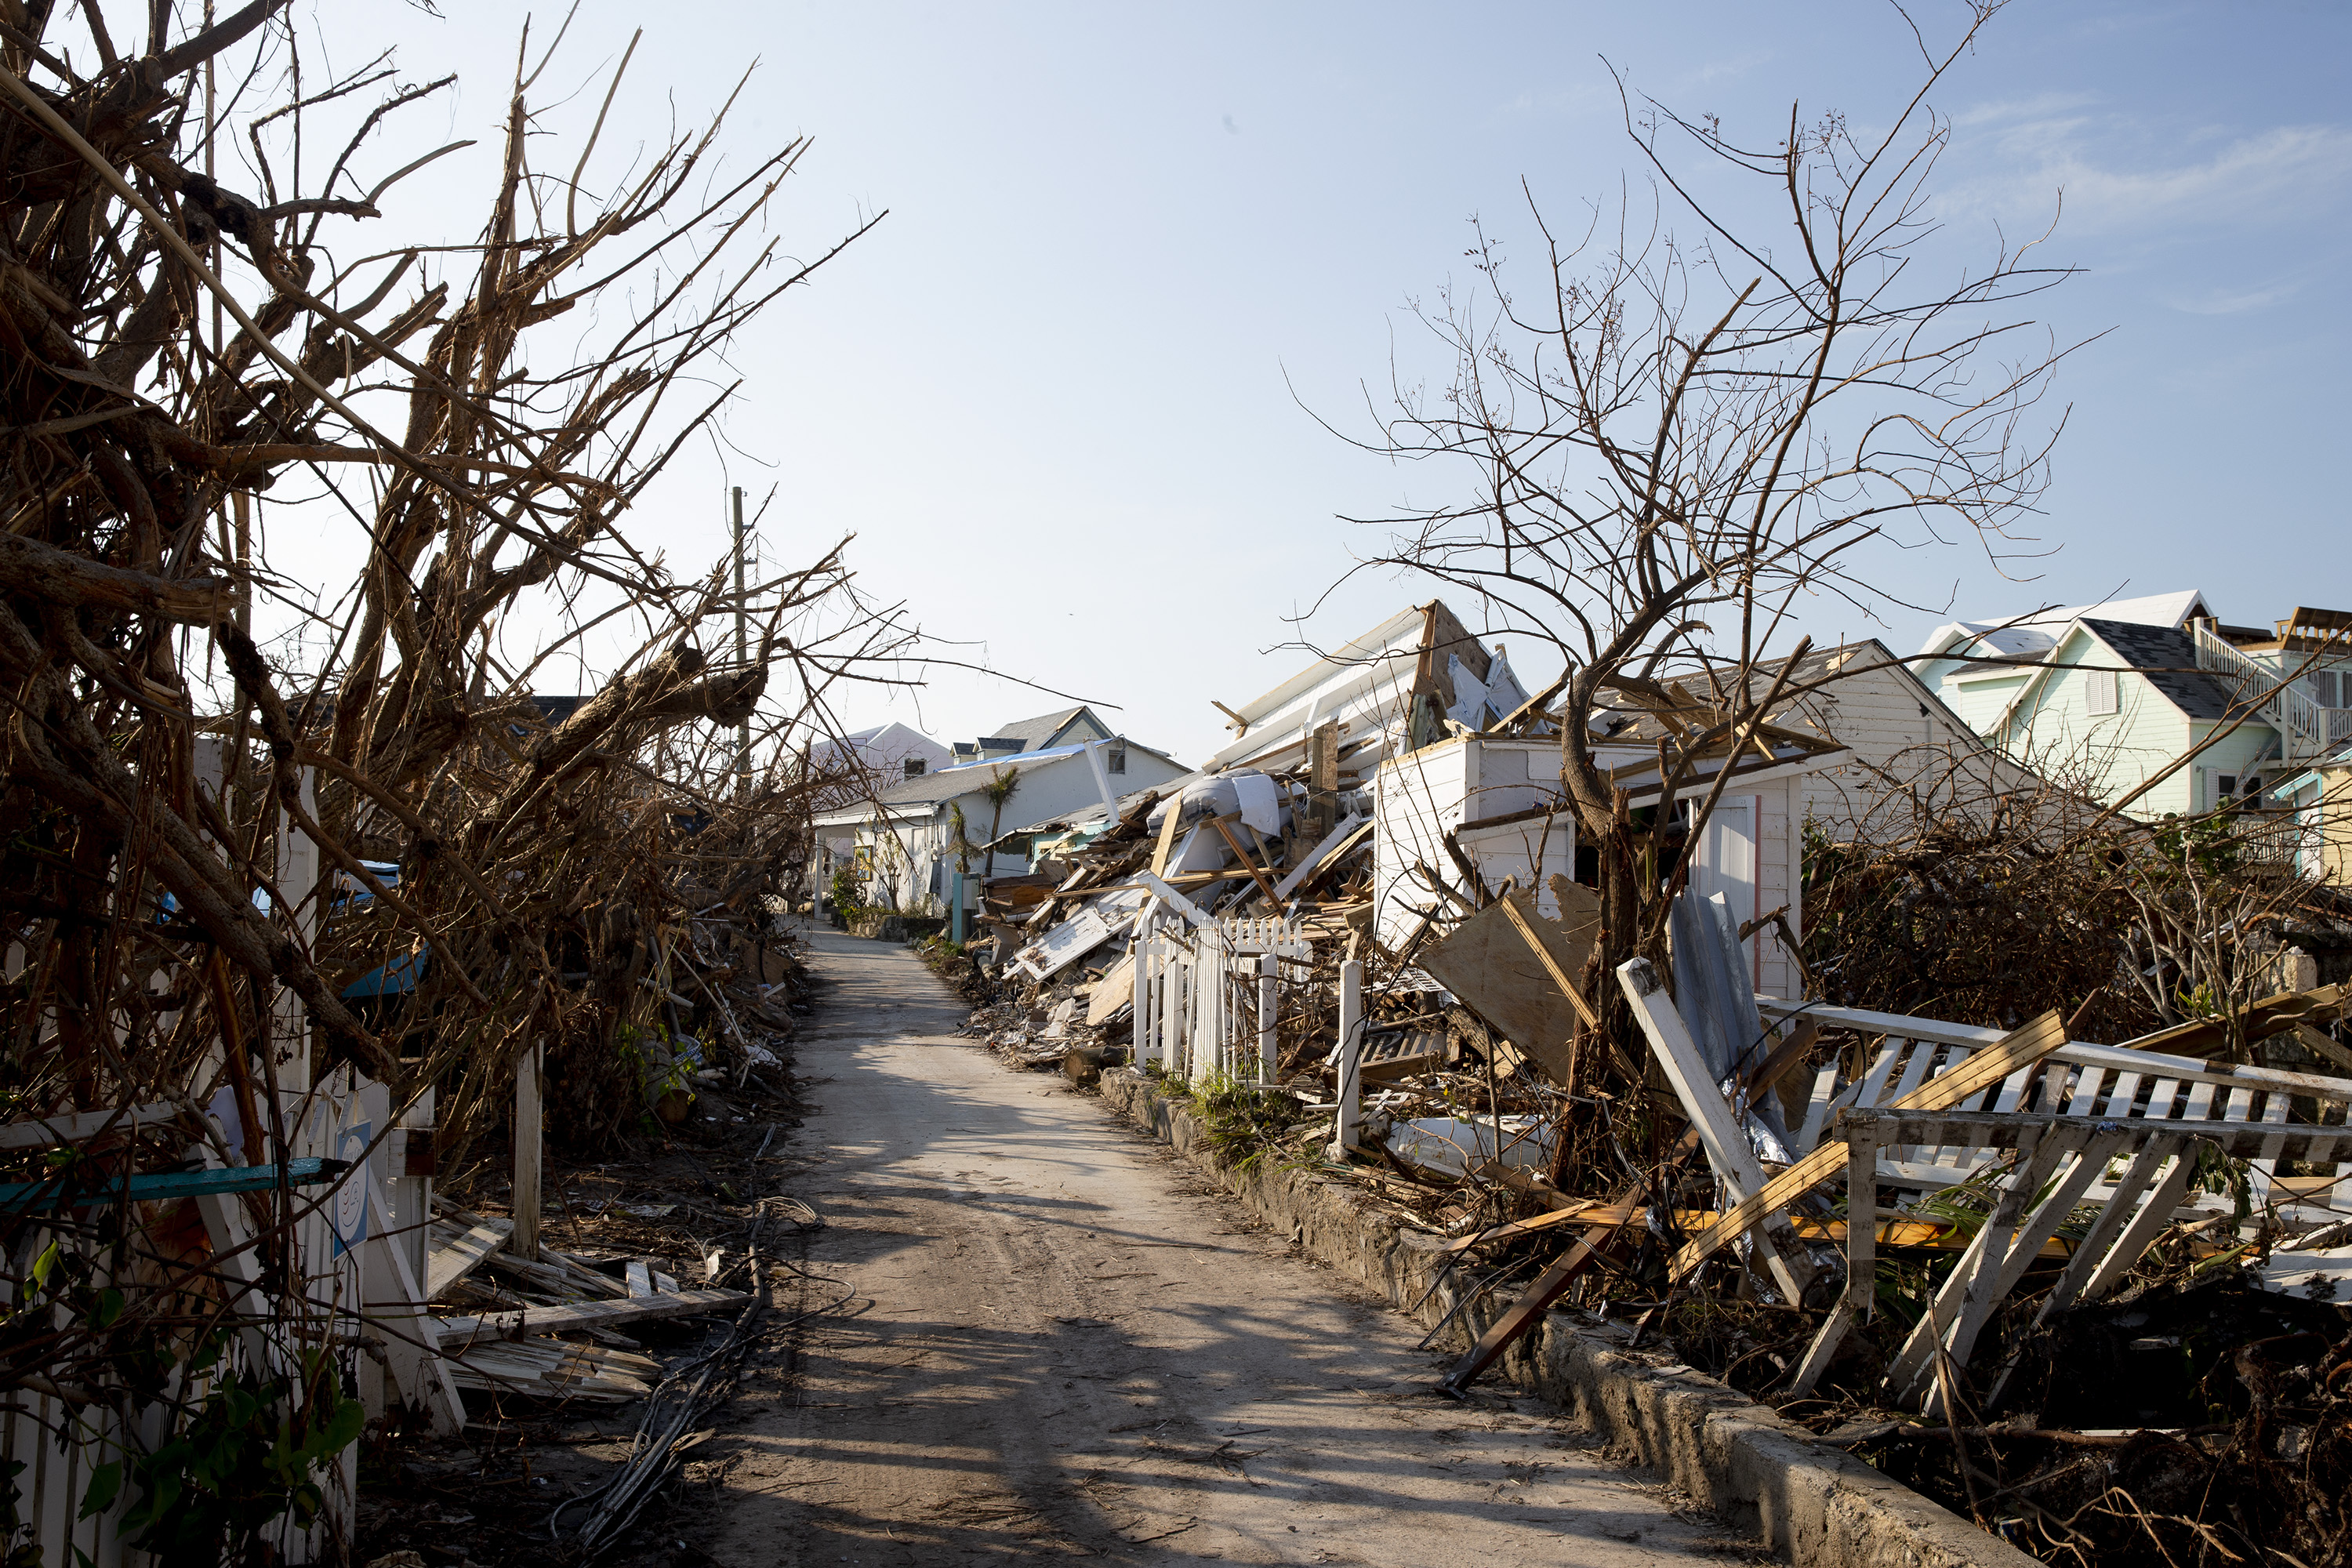 Damages houses are seen in Hurricane Dorian devastated Elbow Key Island on September 7, 2019 in Elbow Key Island, Bahamas. (Jose Jimenez/Getty Images)